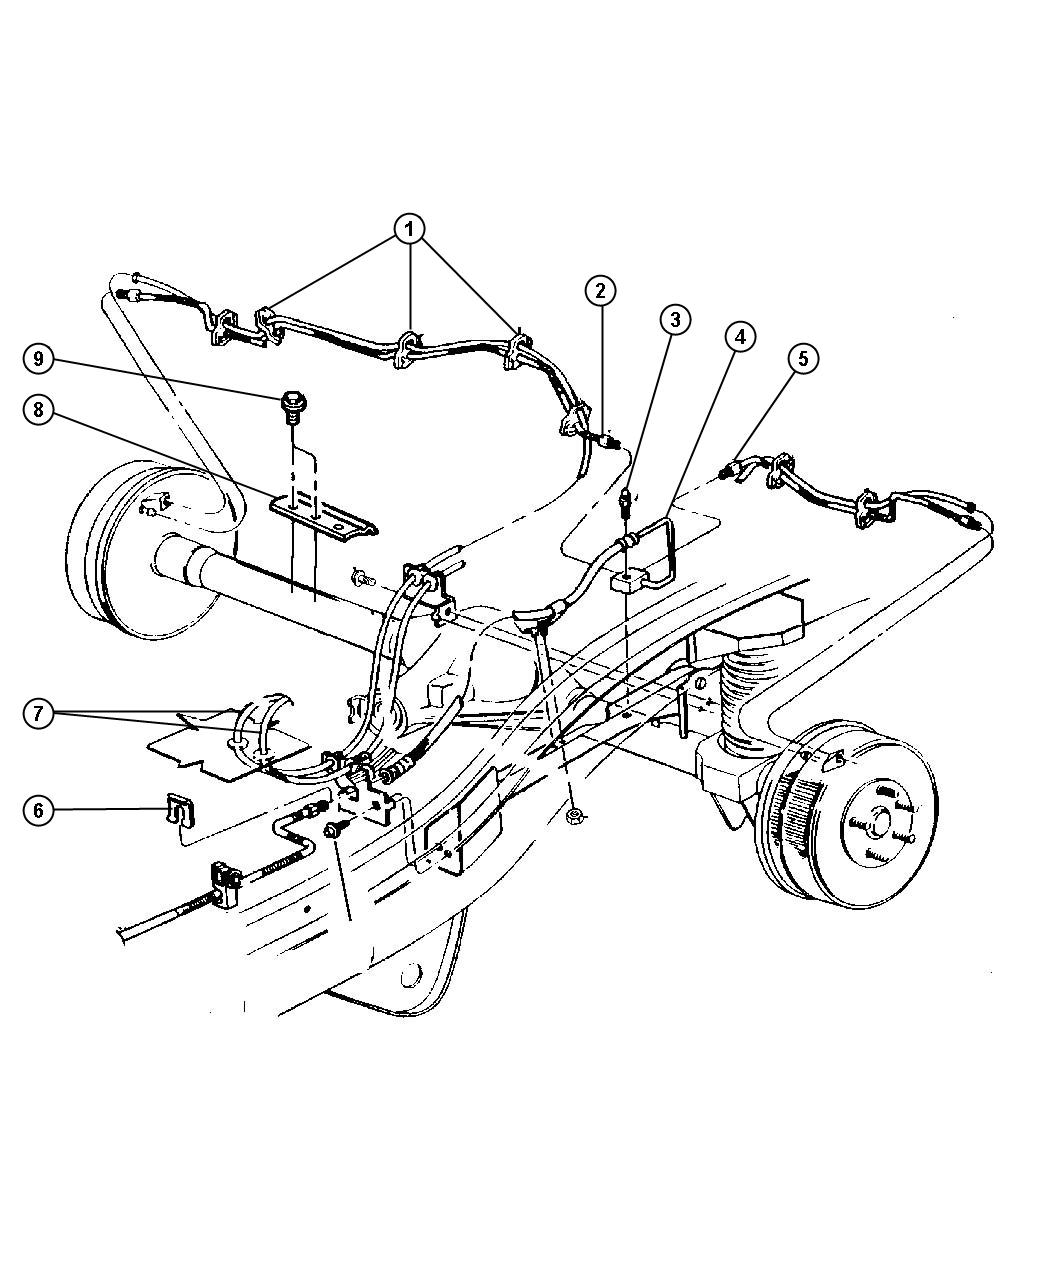 Chrysler concorde engine diagram also how to bleed brakes 1997 dodge stratus furthermore definitive guide gsr